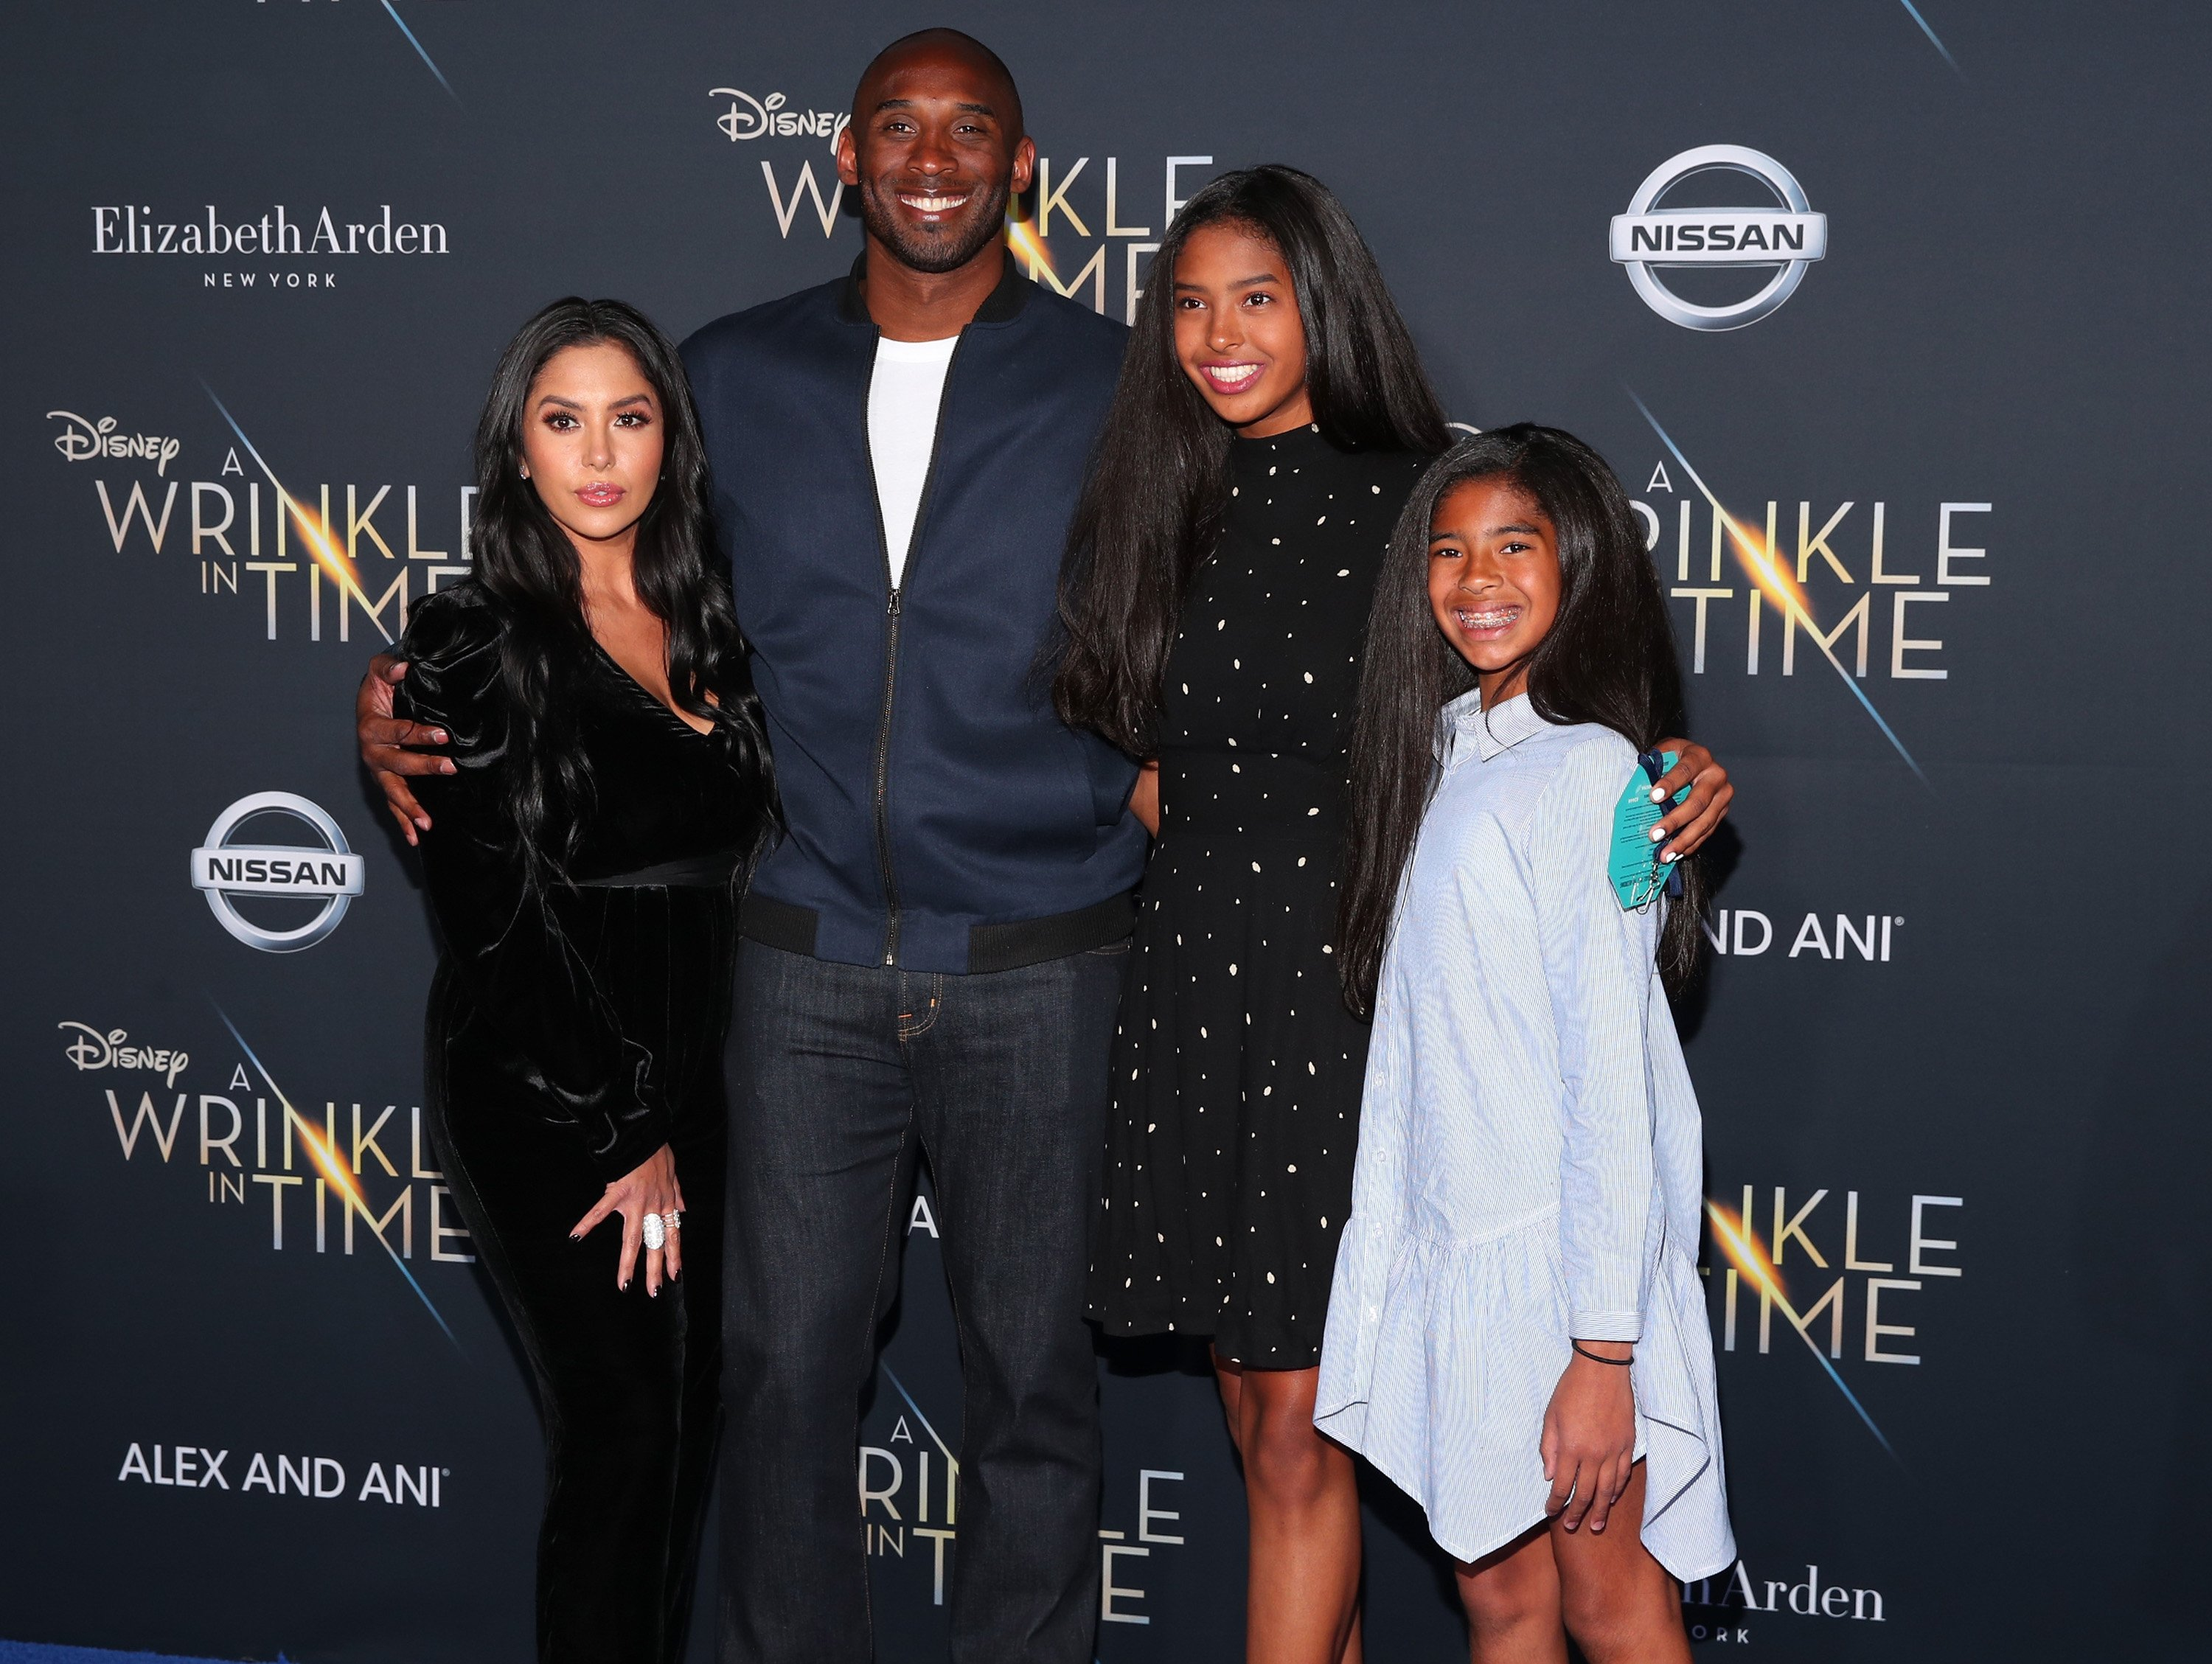 """Kobe Bryant and his family at the premiere of Disney's """"A Wrinkle In Time"""" at the El Capitan Theatre on February 26, 2018 in Los Angeles, California.